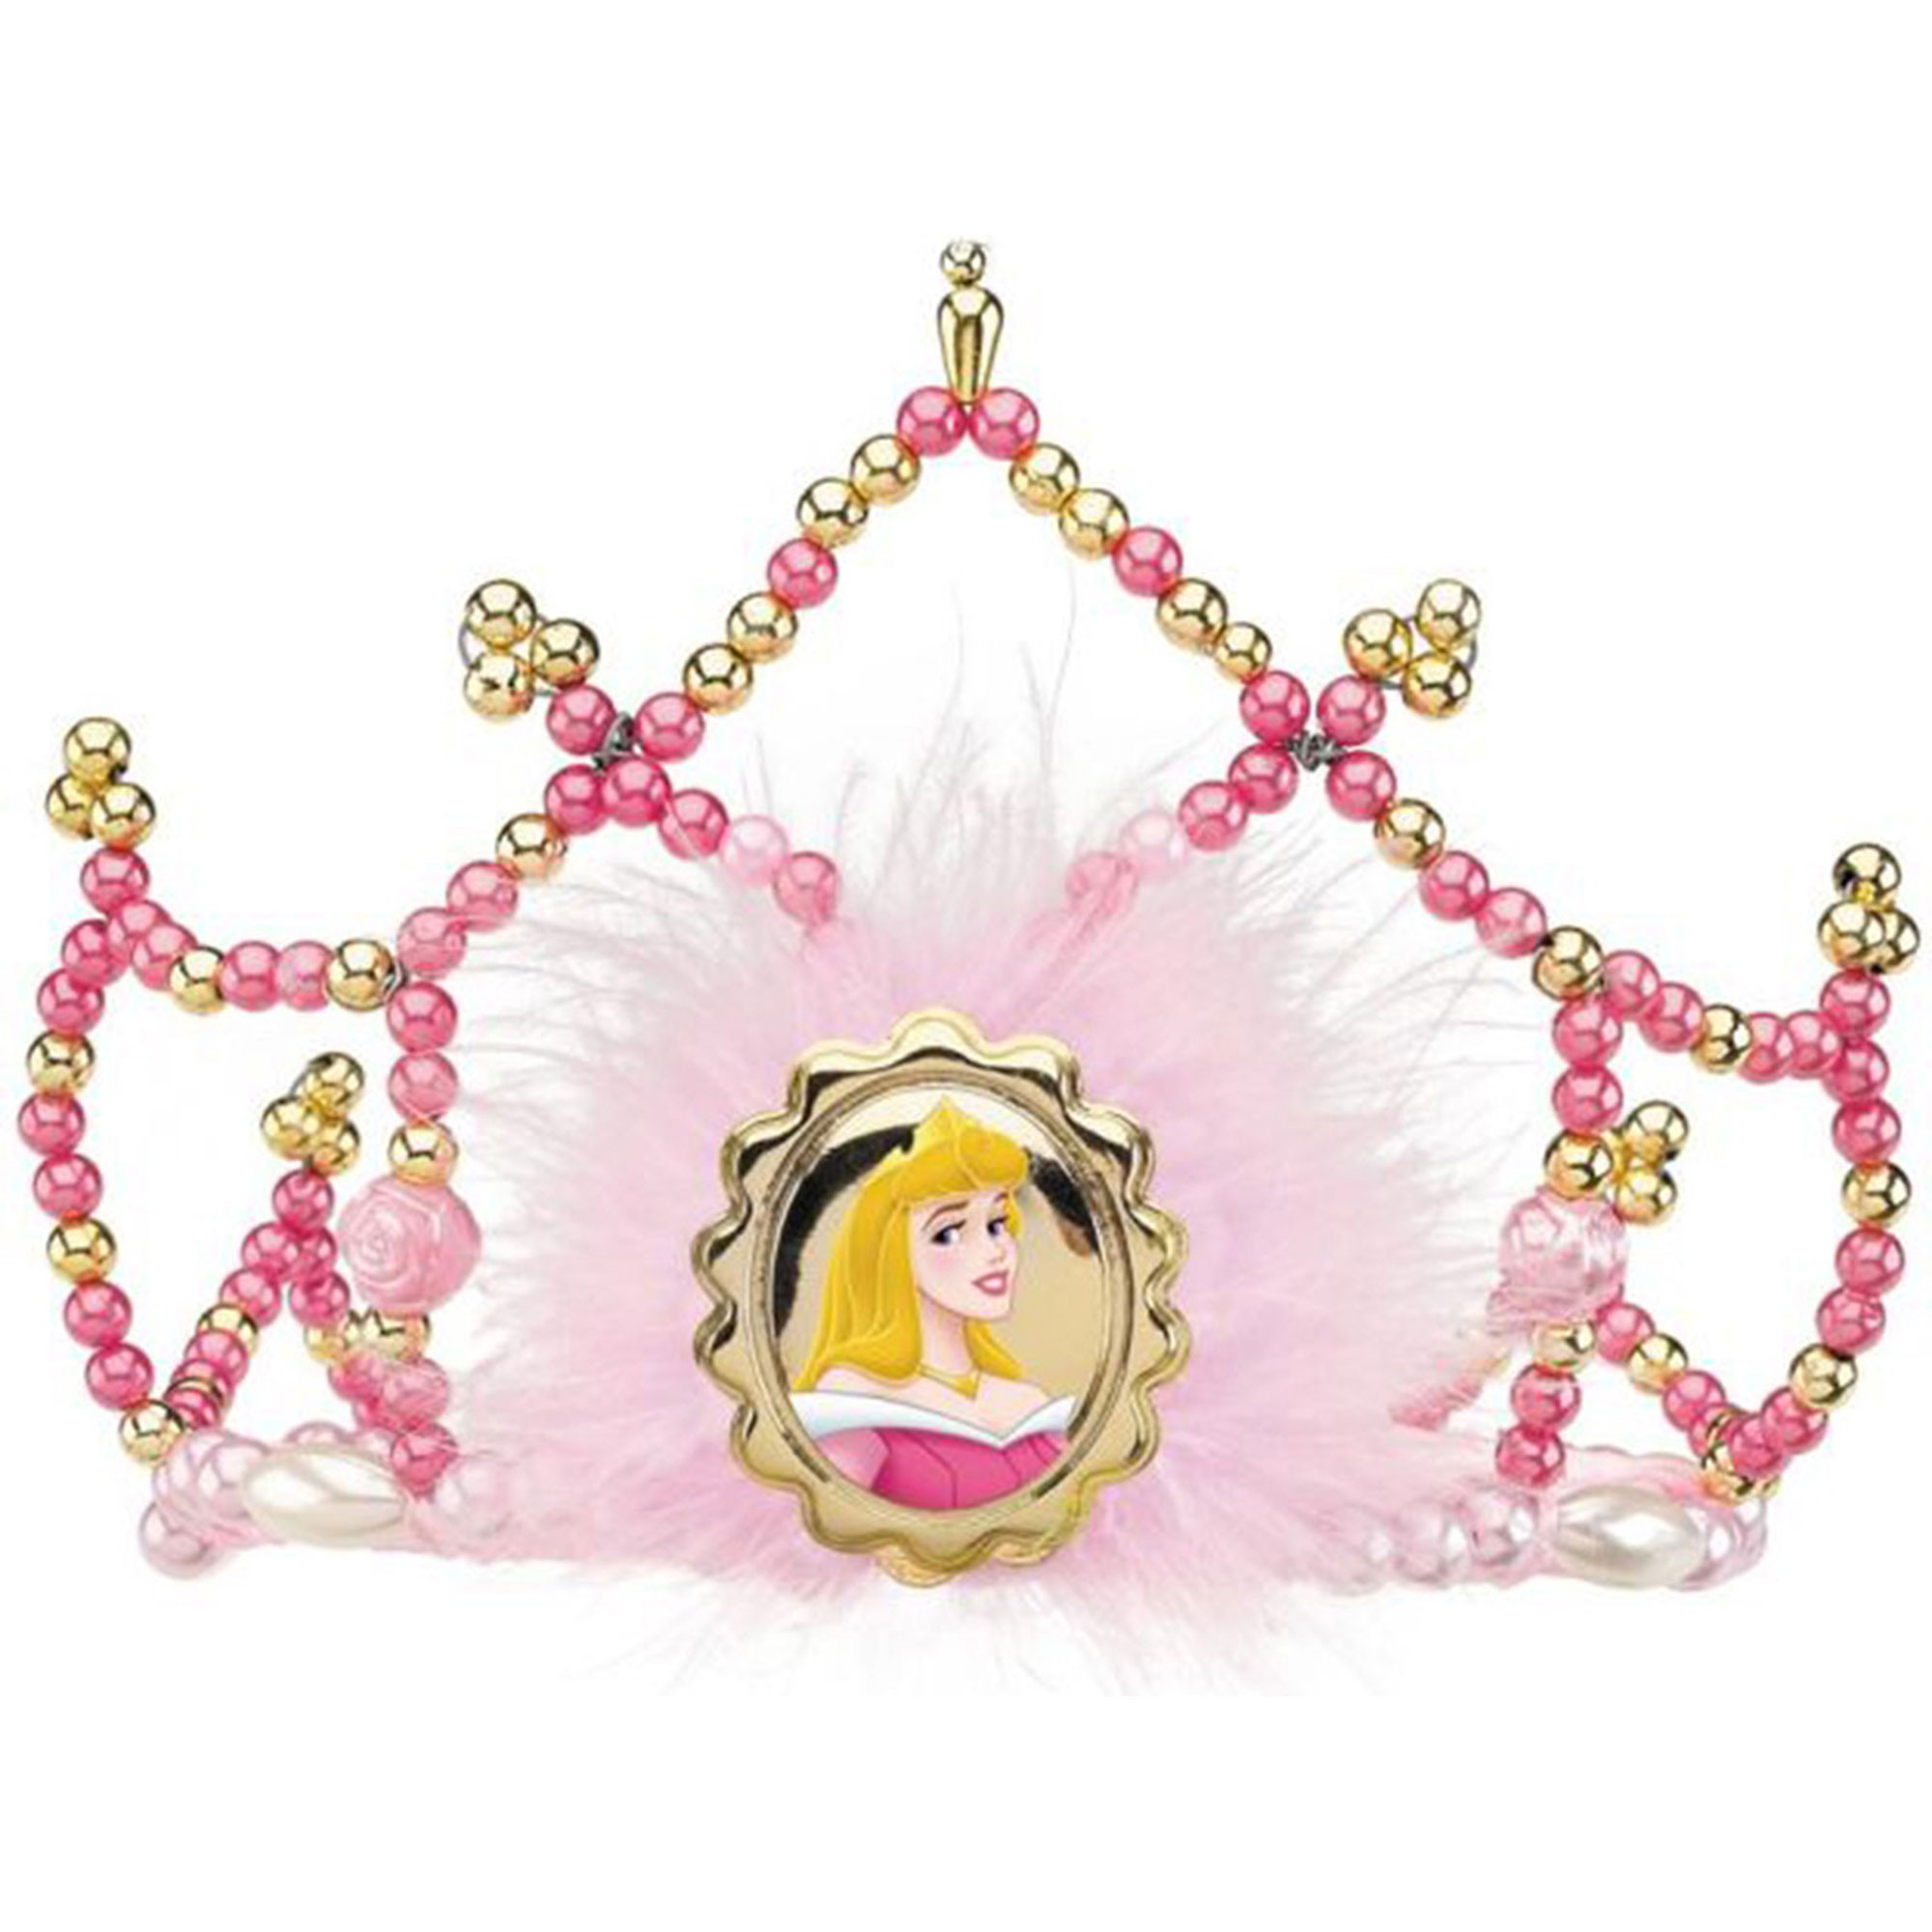 Girls Disney Princess Aurora Accessories & Make Disney Dress Play, Style DG18252